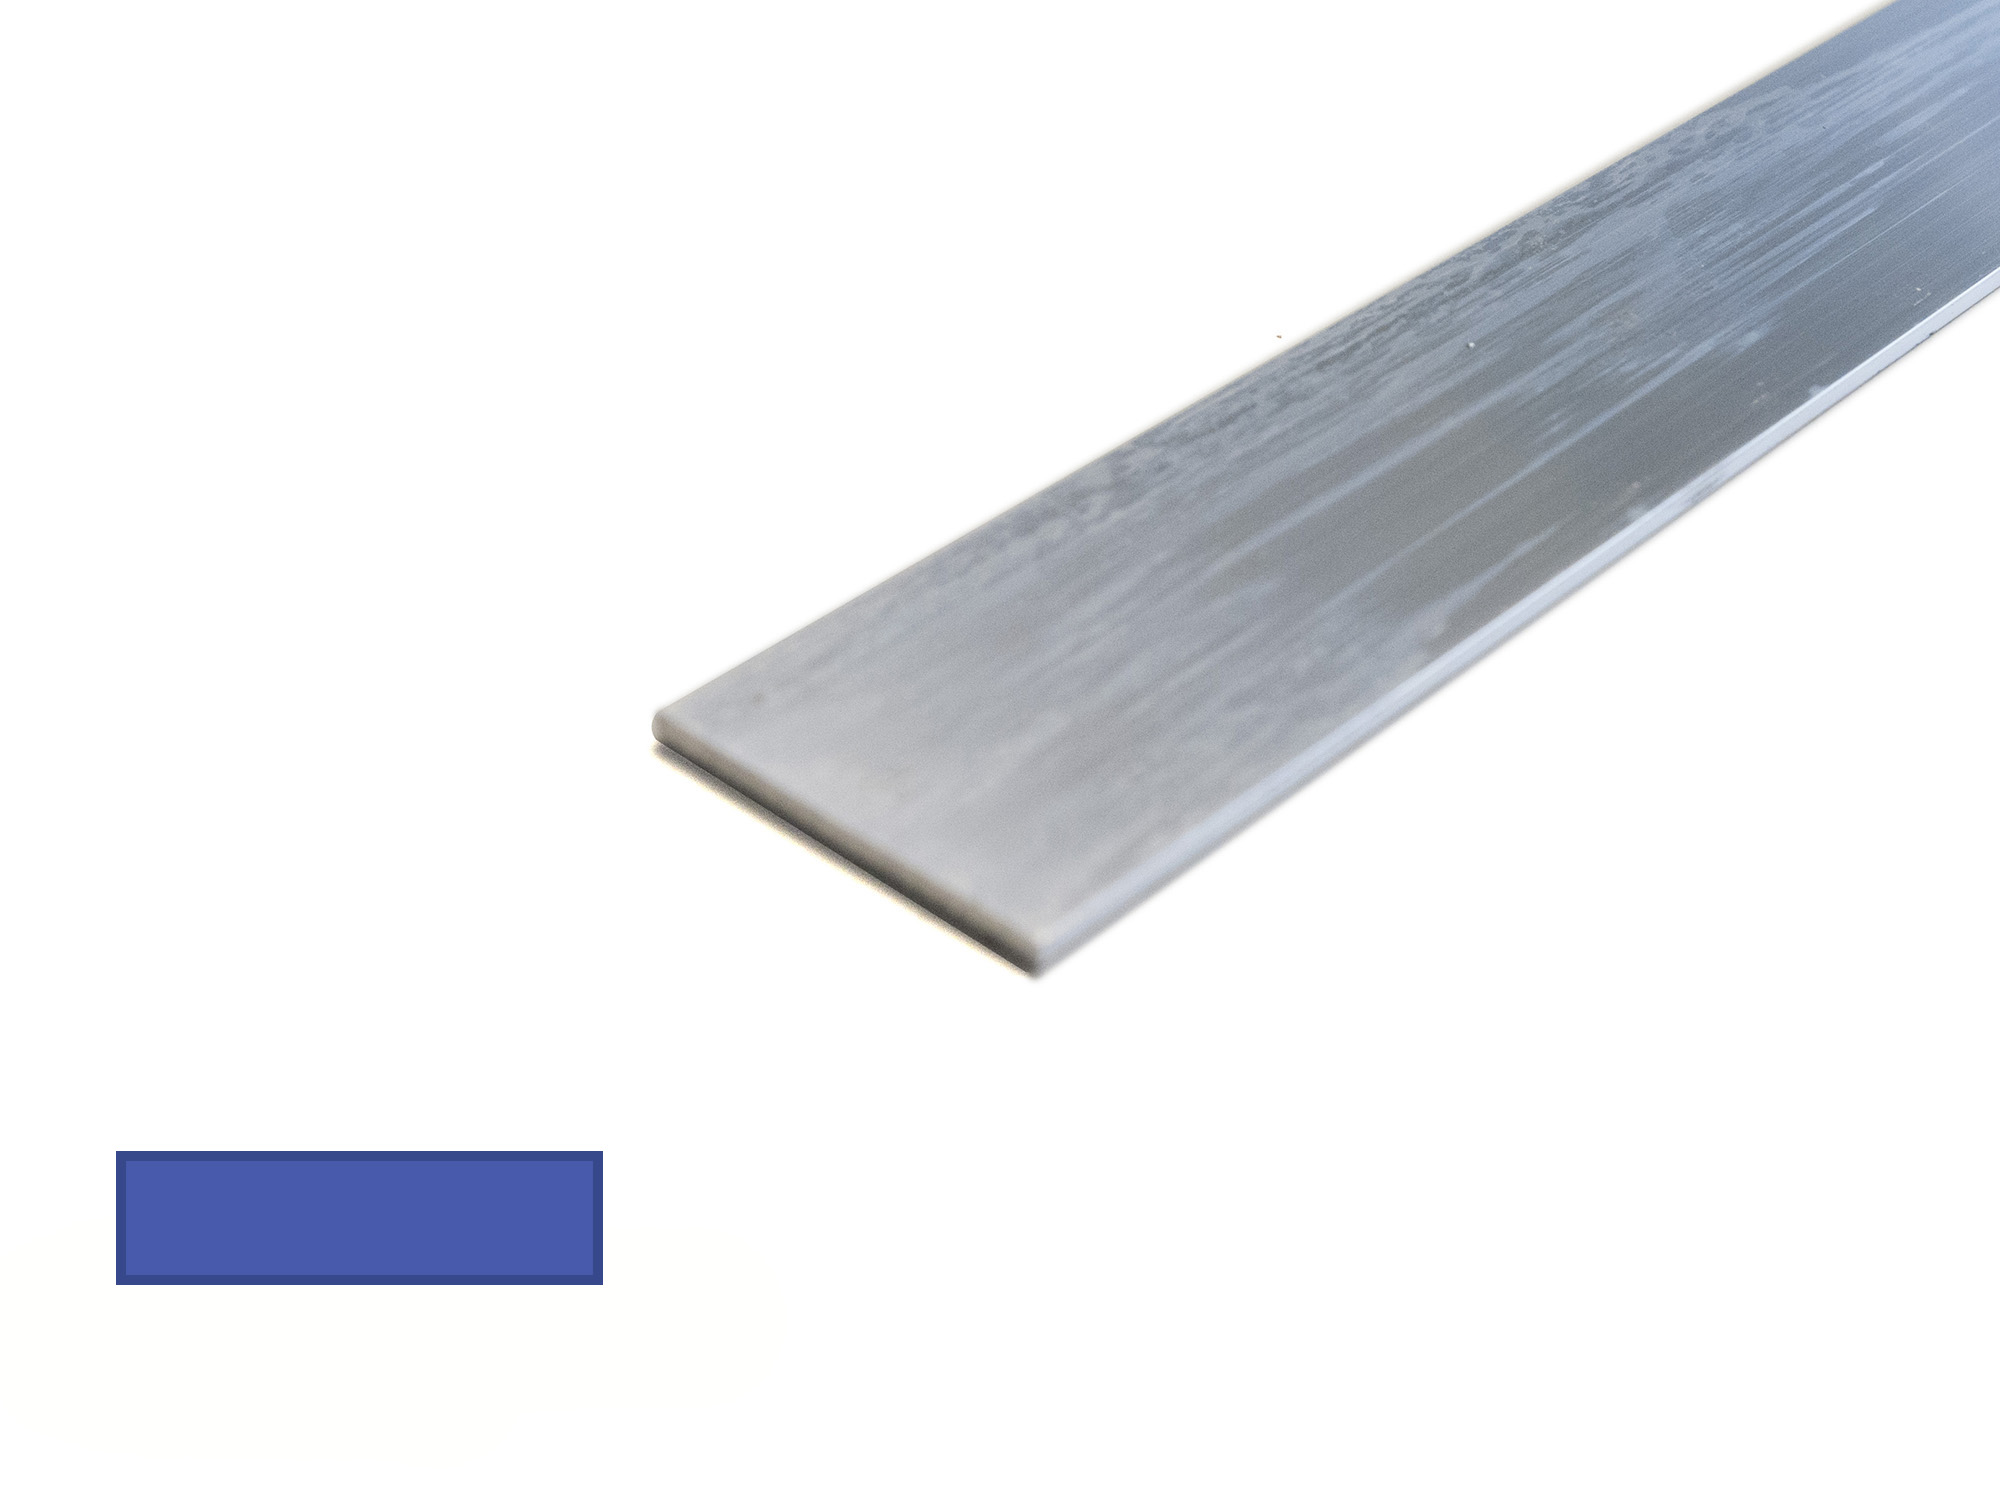 aluminium strip 25 x 8mm